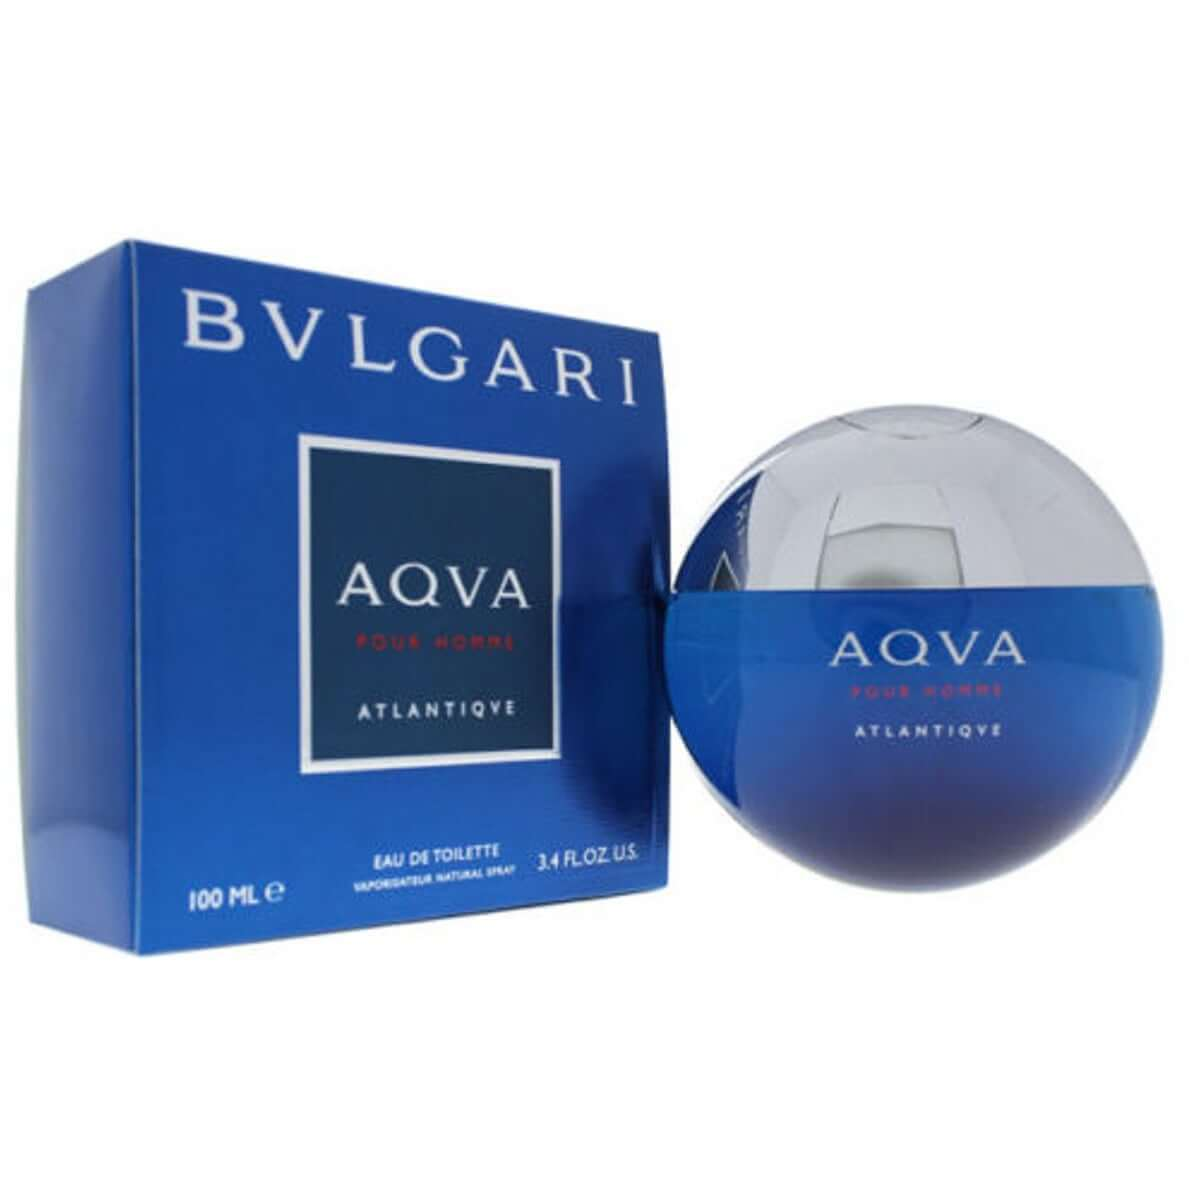 Aqva Atlantiqve Pour Homme by Bvlgari cologne EDT 3.3 / 3.4 oz New in Box